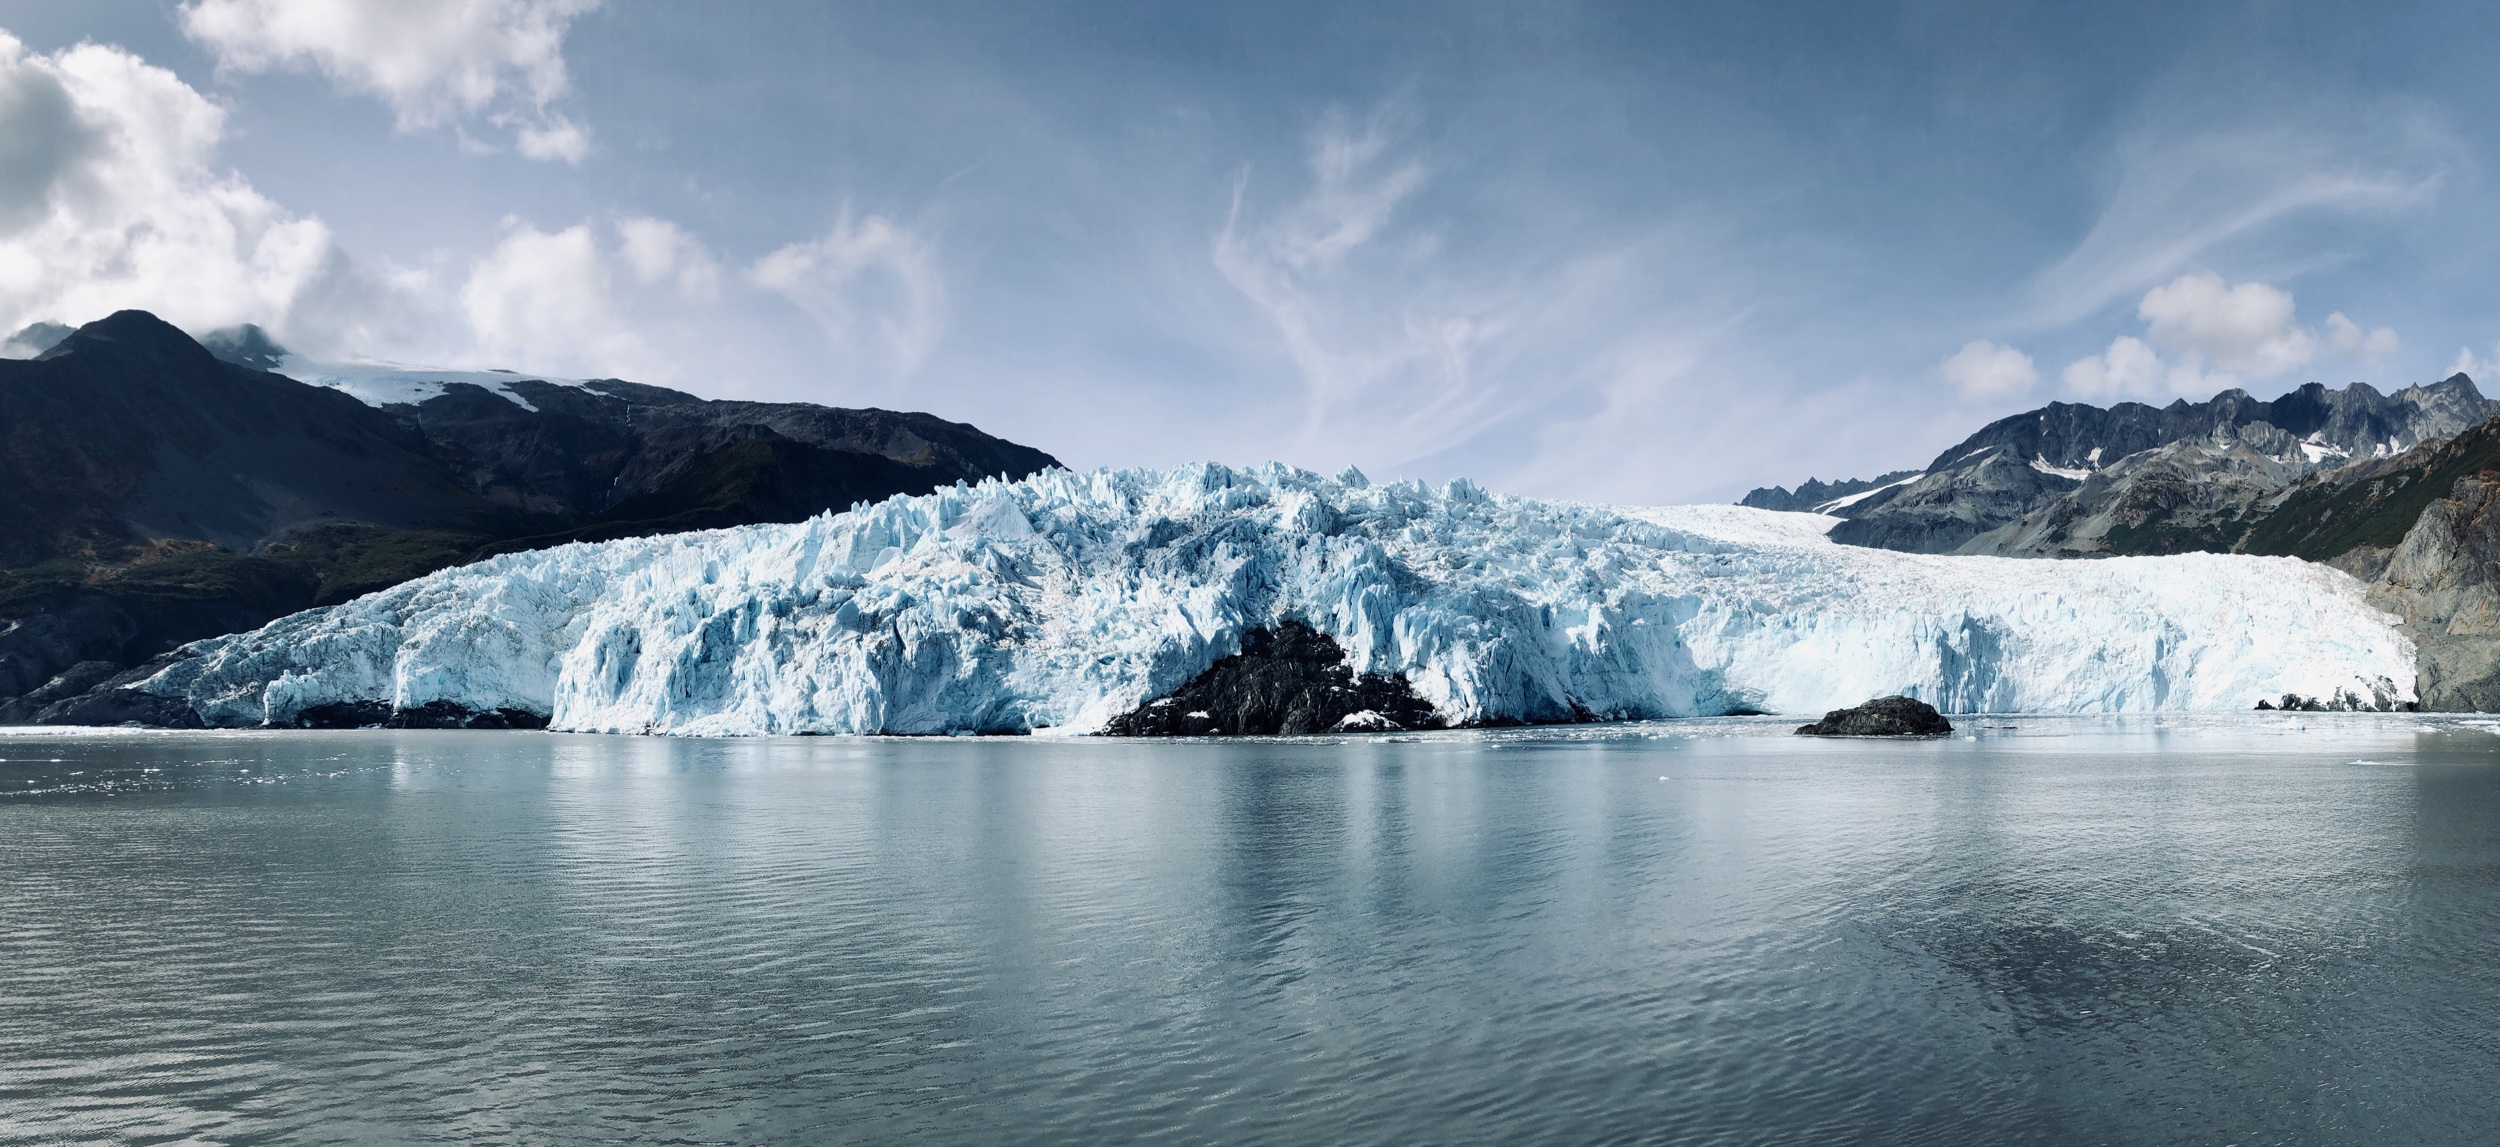 This is a super-wide angle shot. What you're looking at is a glacier that's about a mile wide and 800 feet tall.